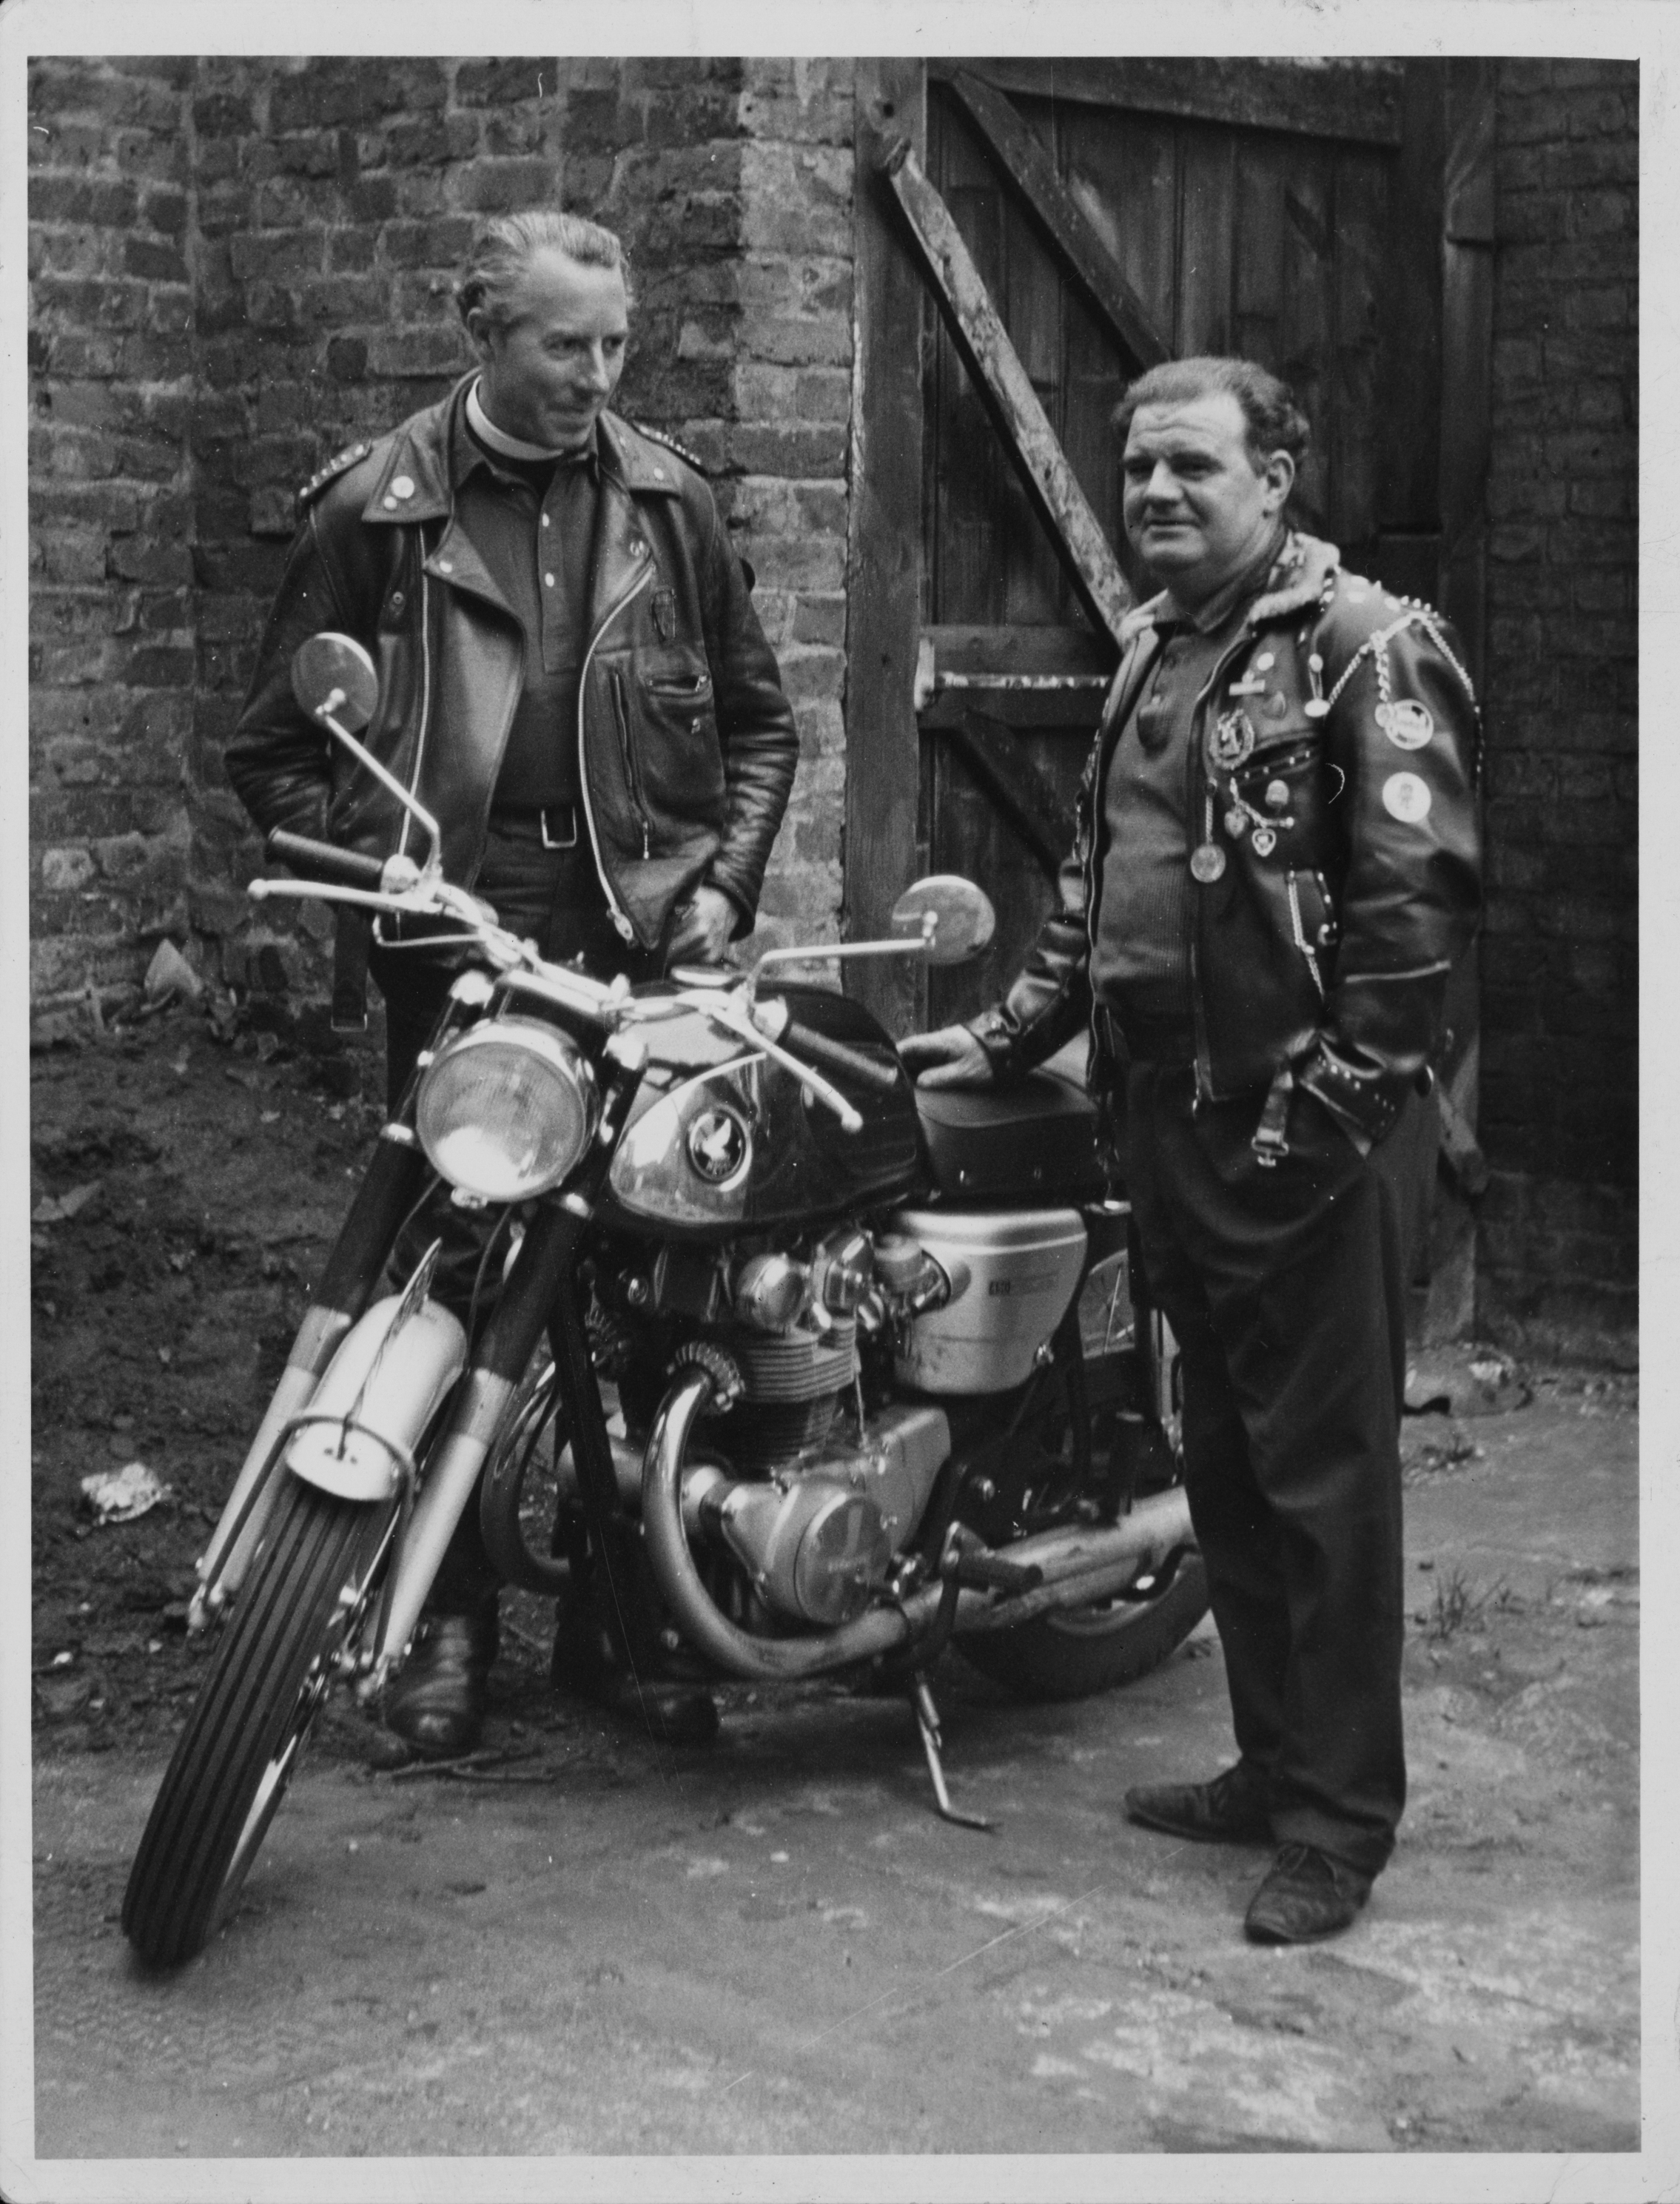 vicar, man and bike.jpg